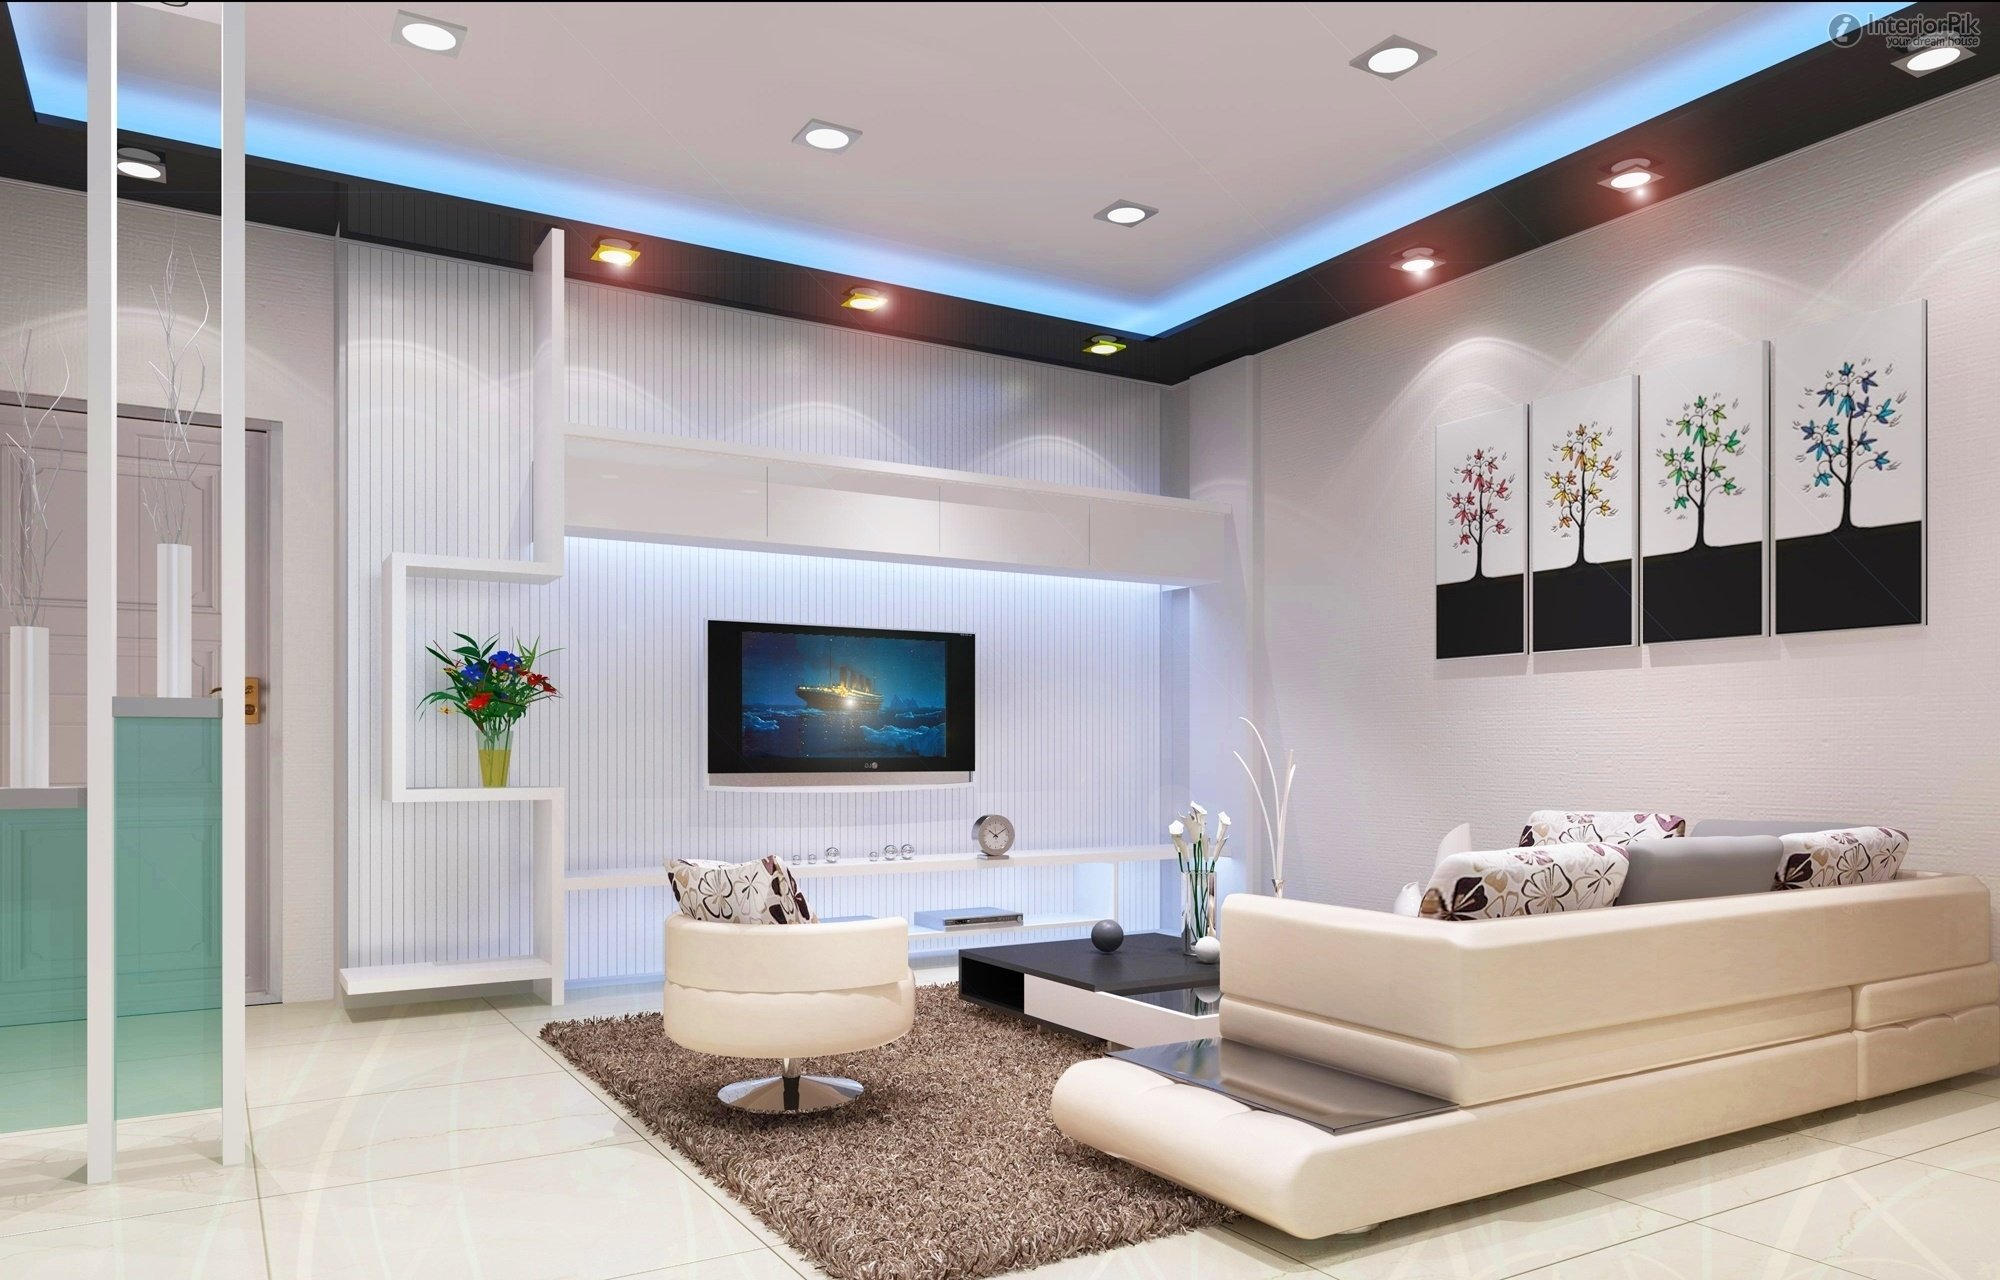 10 Amazing Living Room Ideas With Tv livingroom scenic living room decorating ideas tv wall design on 2020